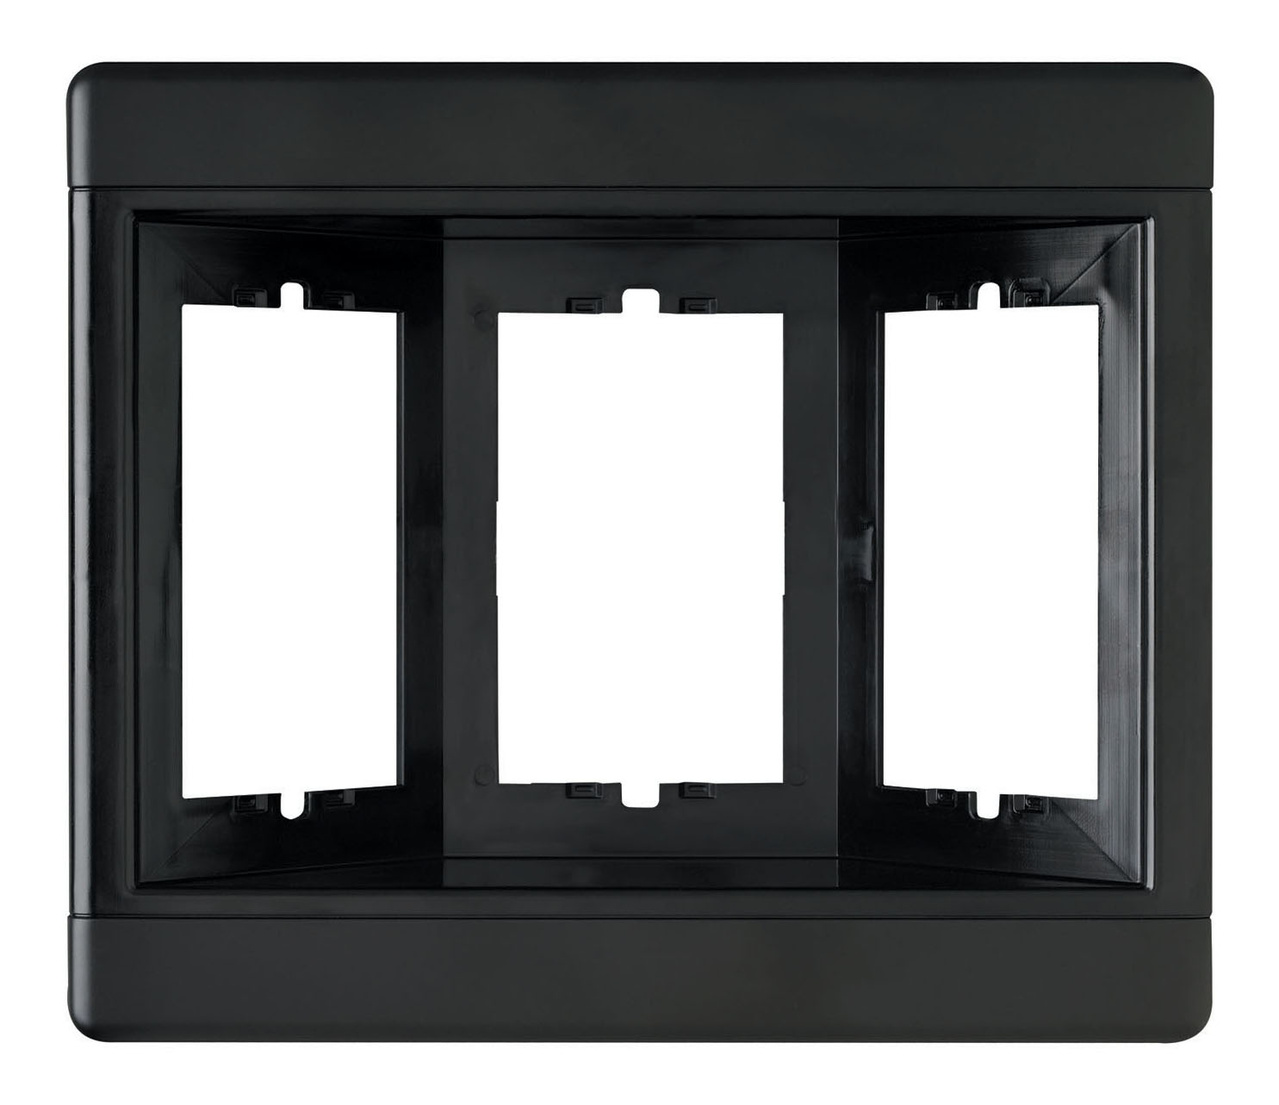 Recessed TV Box, TV3WBK